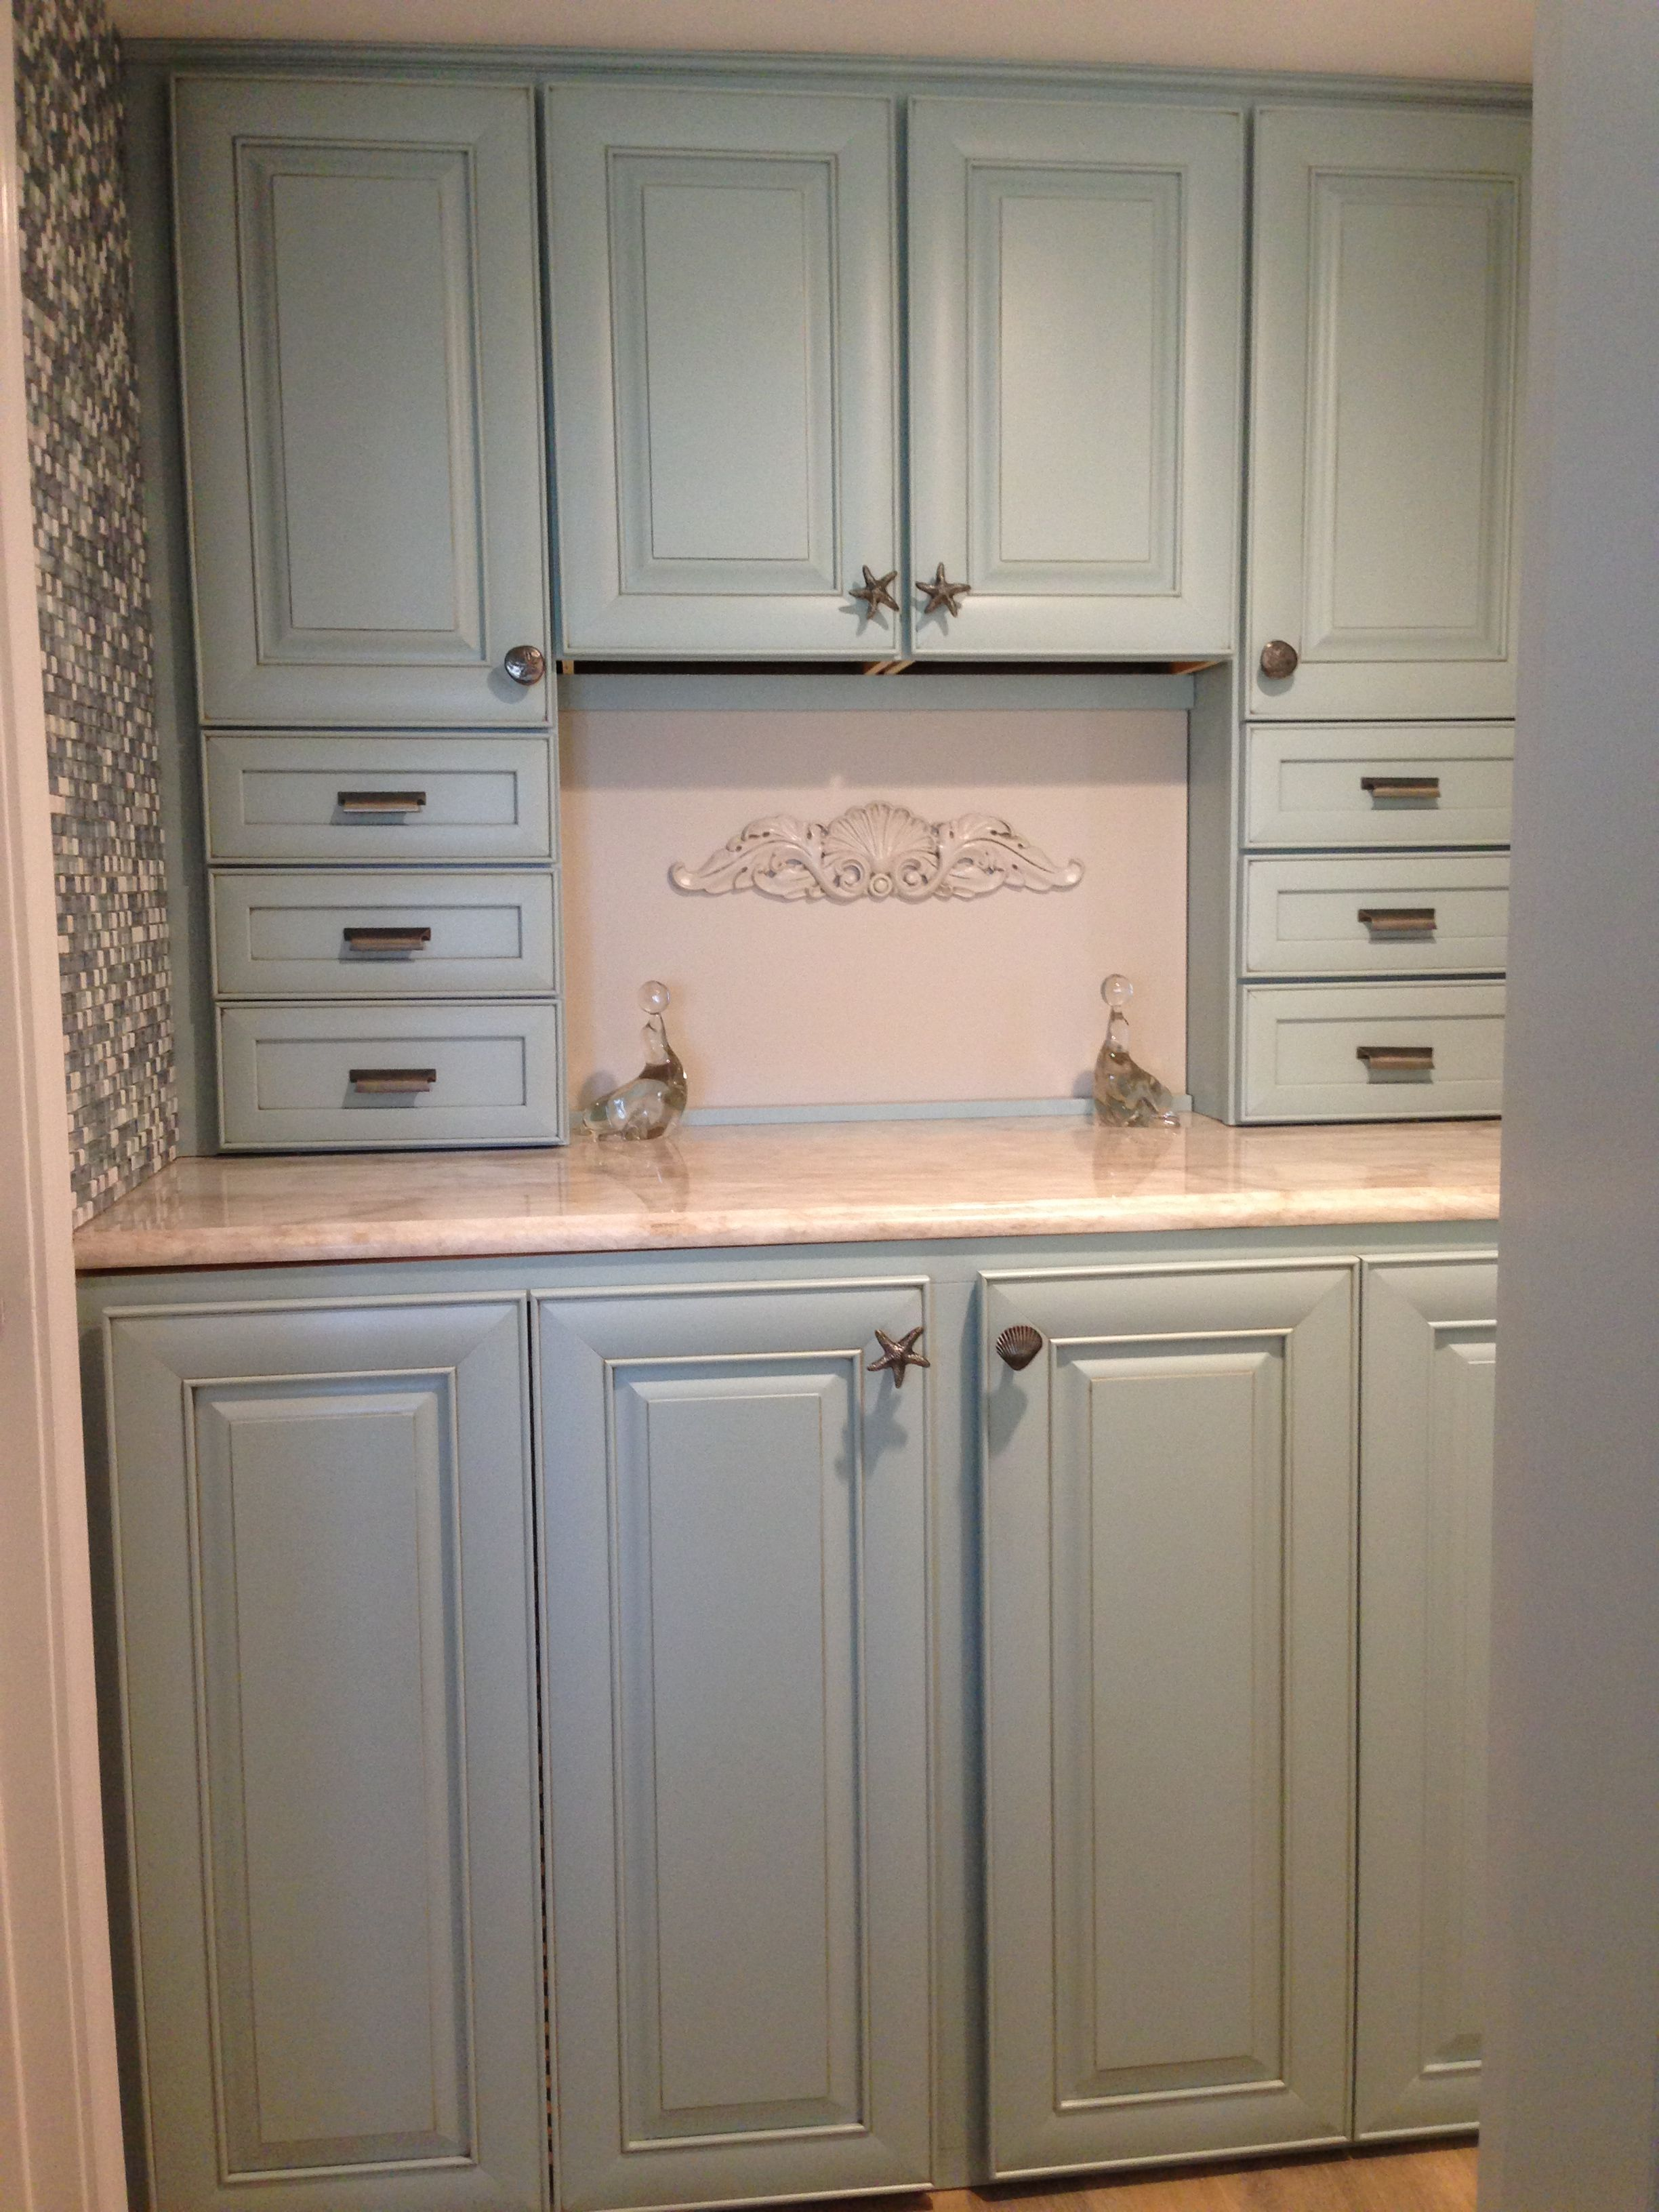 Laundry Room Remodel In Jensen Beach Fl Designed By Carol Acres With Fieldstone Cabinetry Dealer Kitchen Cabinet Speciali Kitchen Cabinets Kitchen Cabinetry